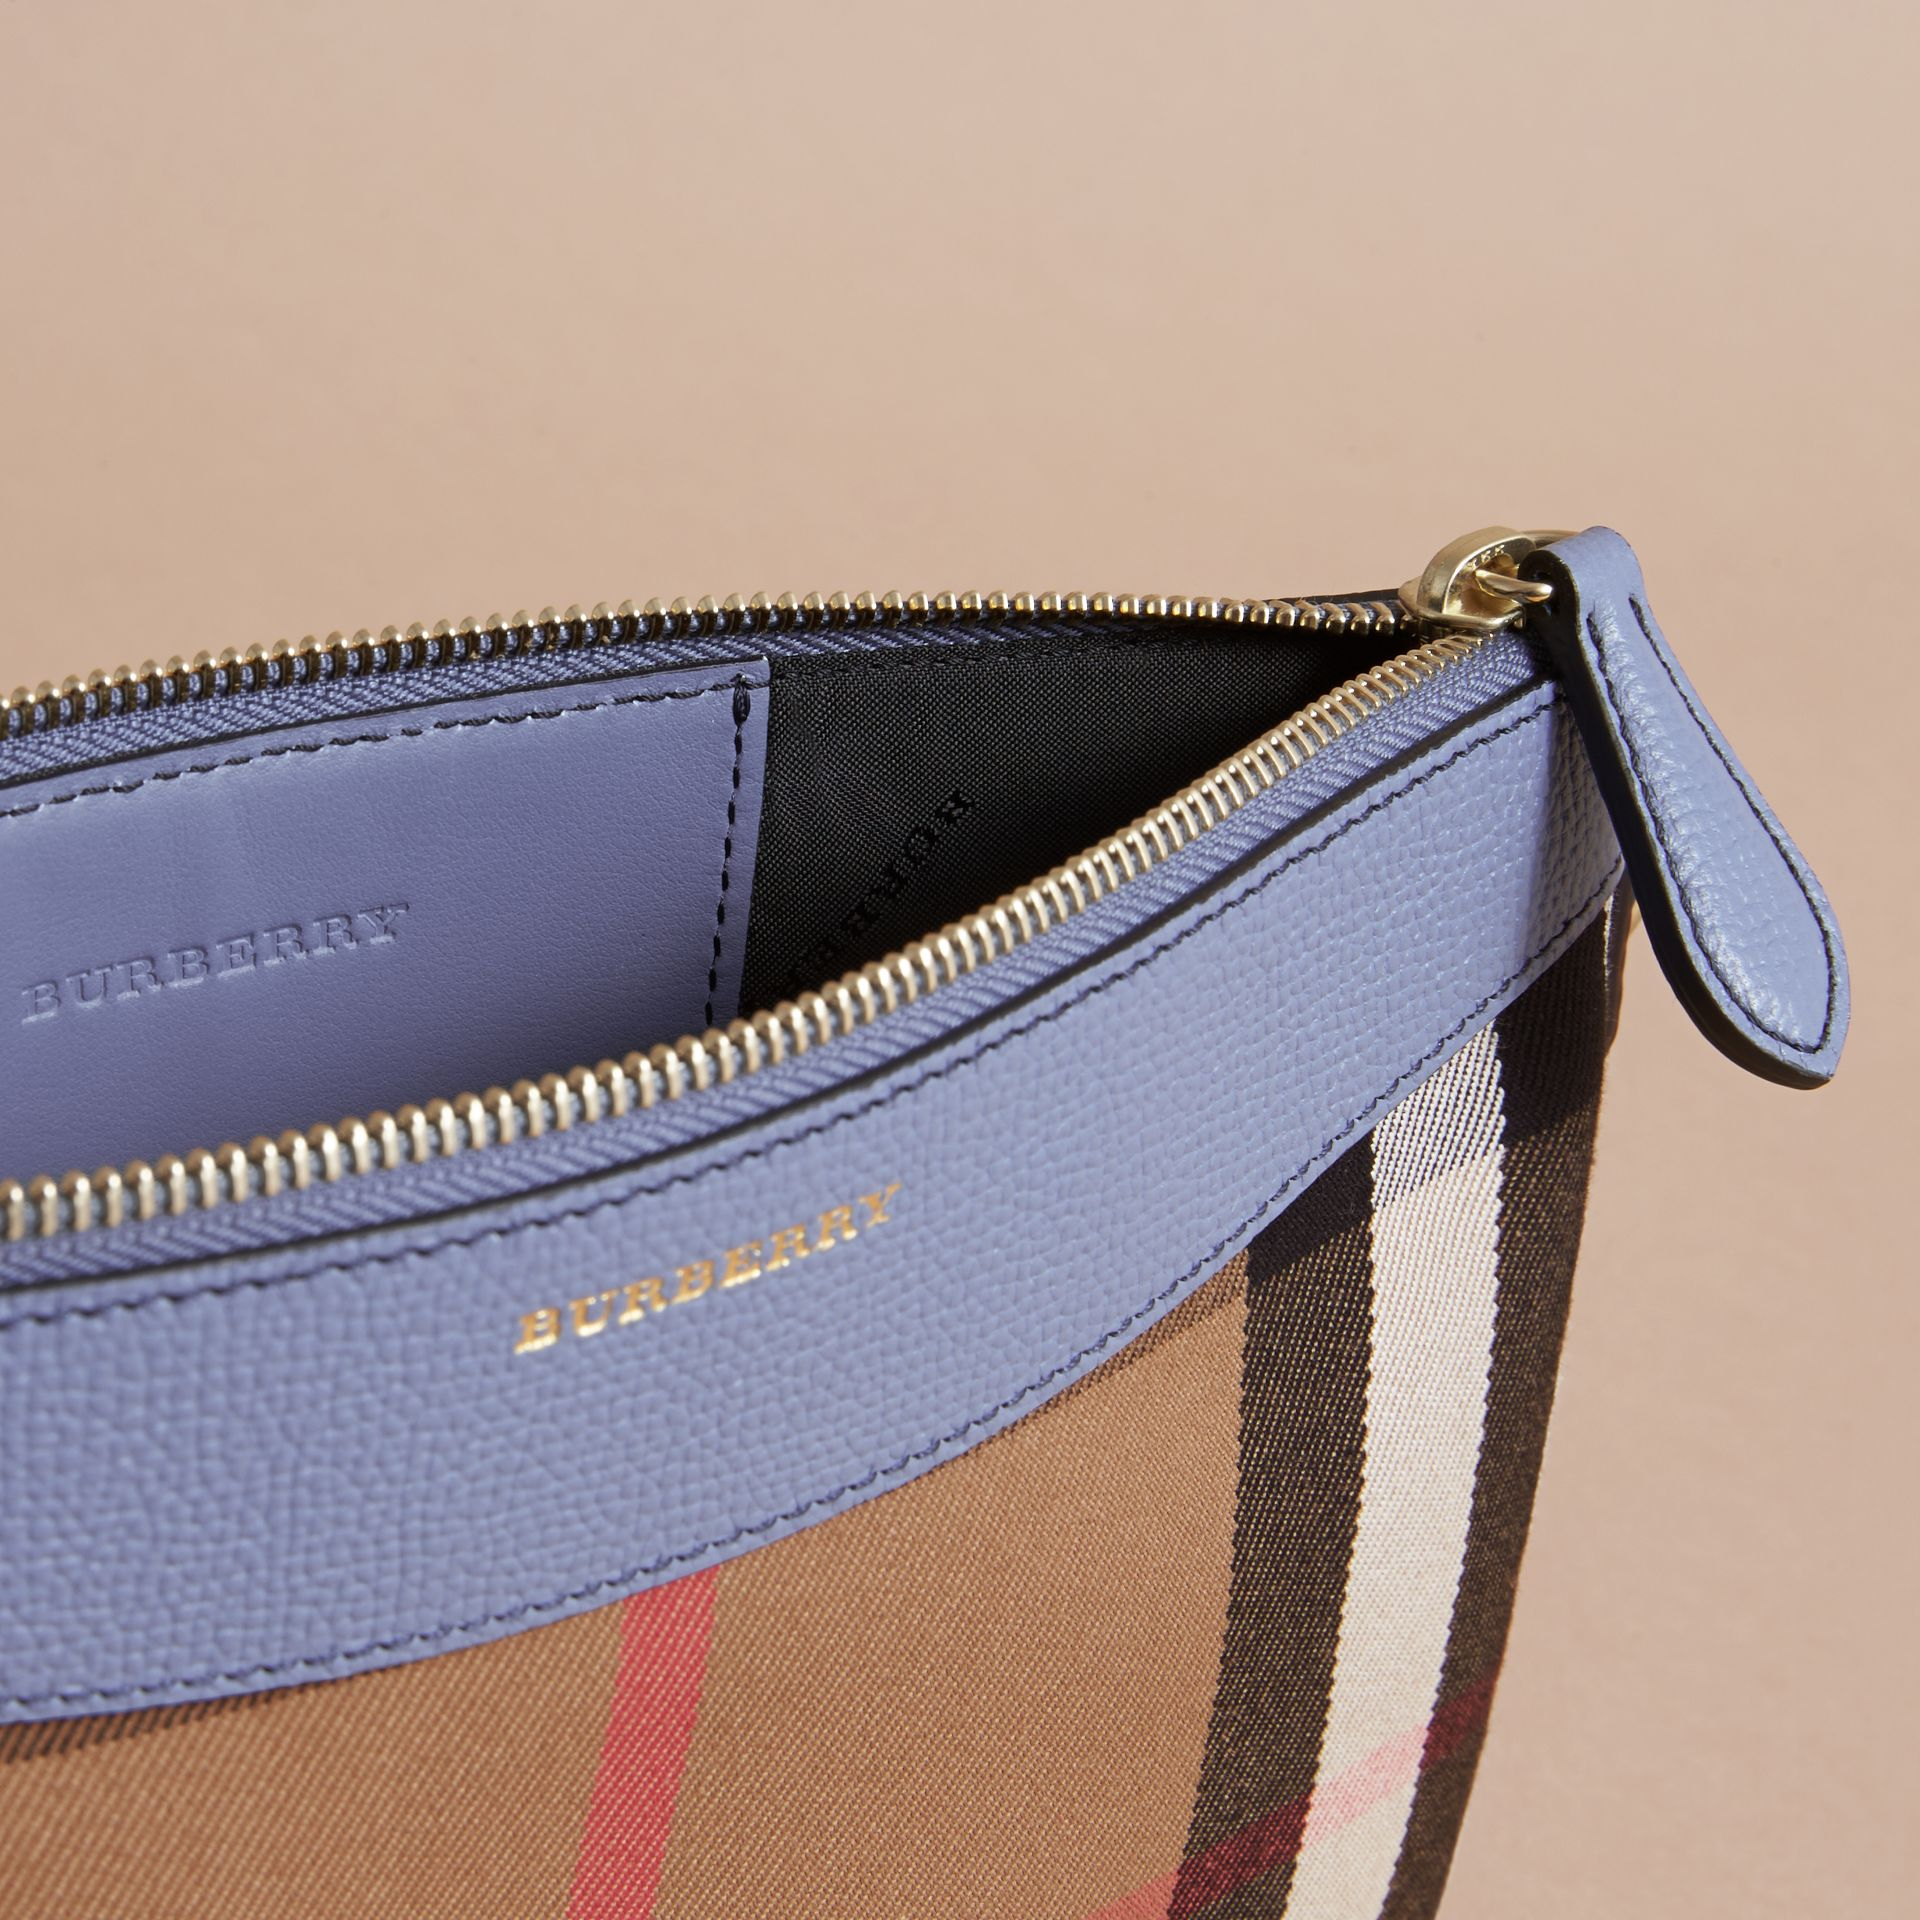 House Check and Leather Clutch Bag in Slate Blue - Women | Burberry - gallery image 6